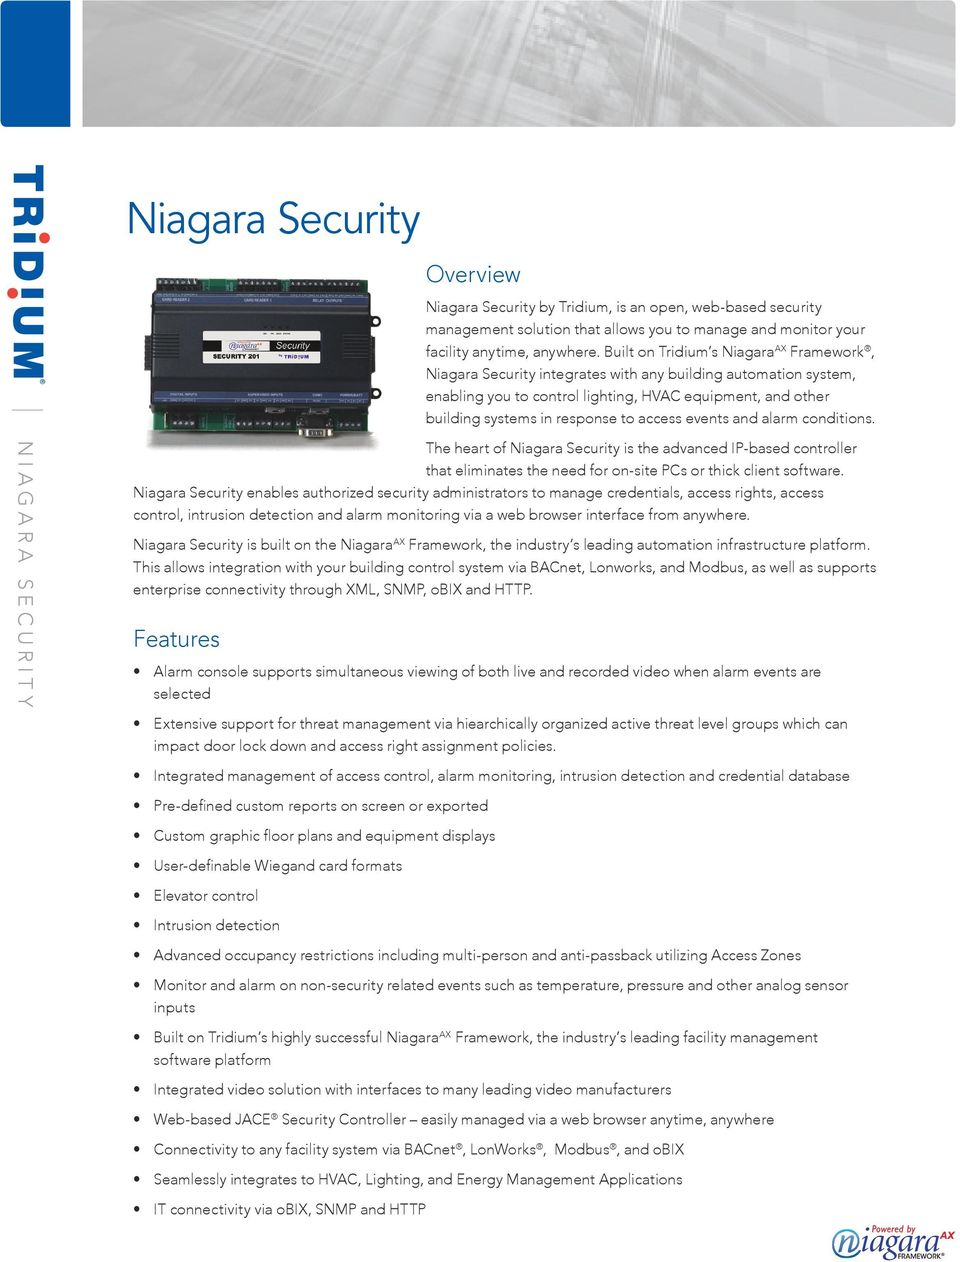 access events and alarm conditions. The heart of Niagara Security is the advanced IP-based controller that eliminates the need for on-site PCs or thick client software.